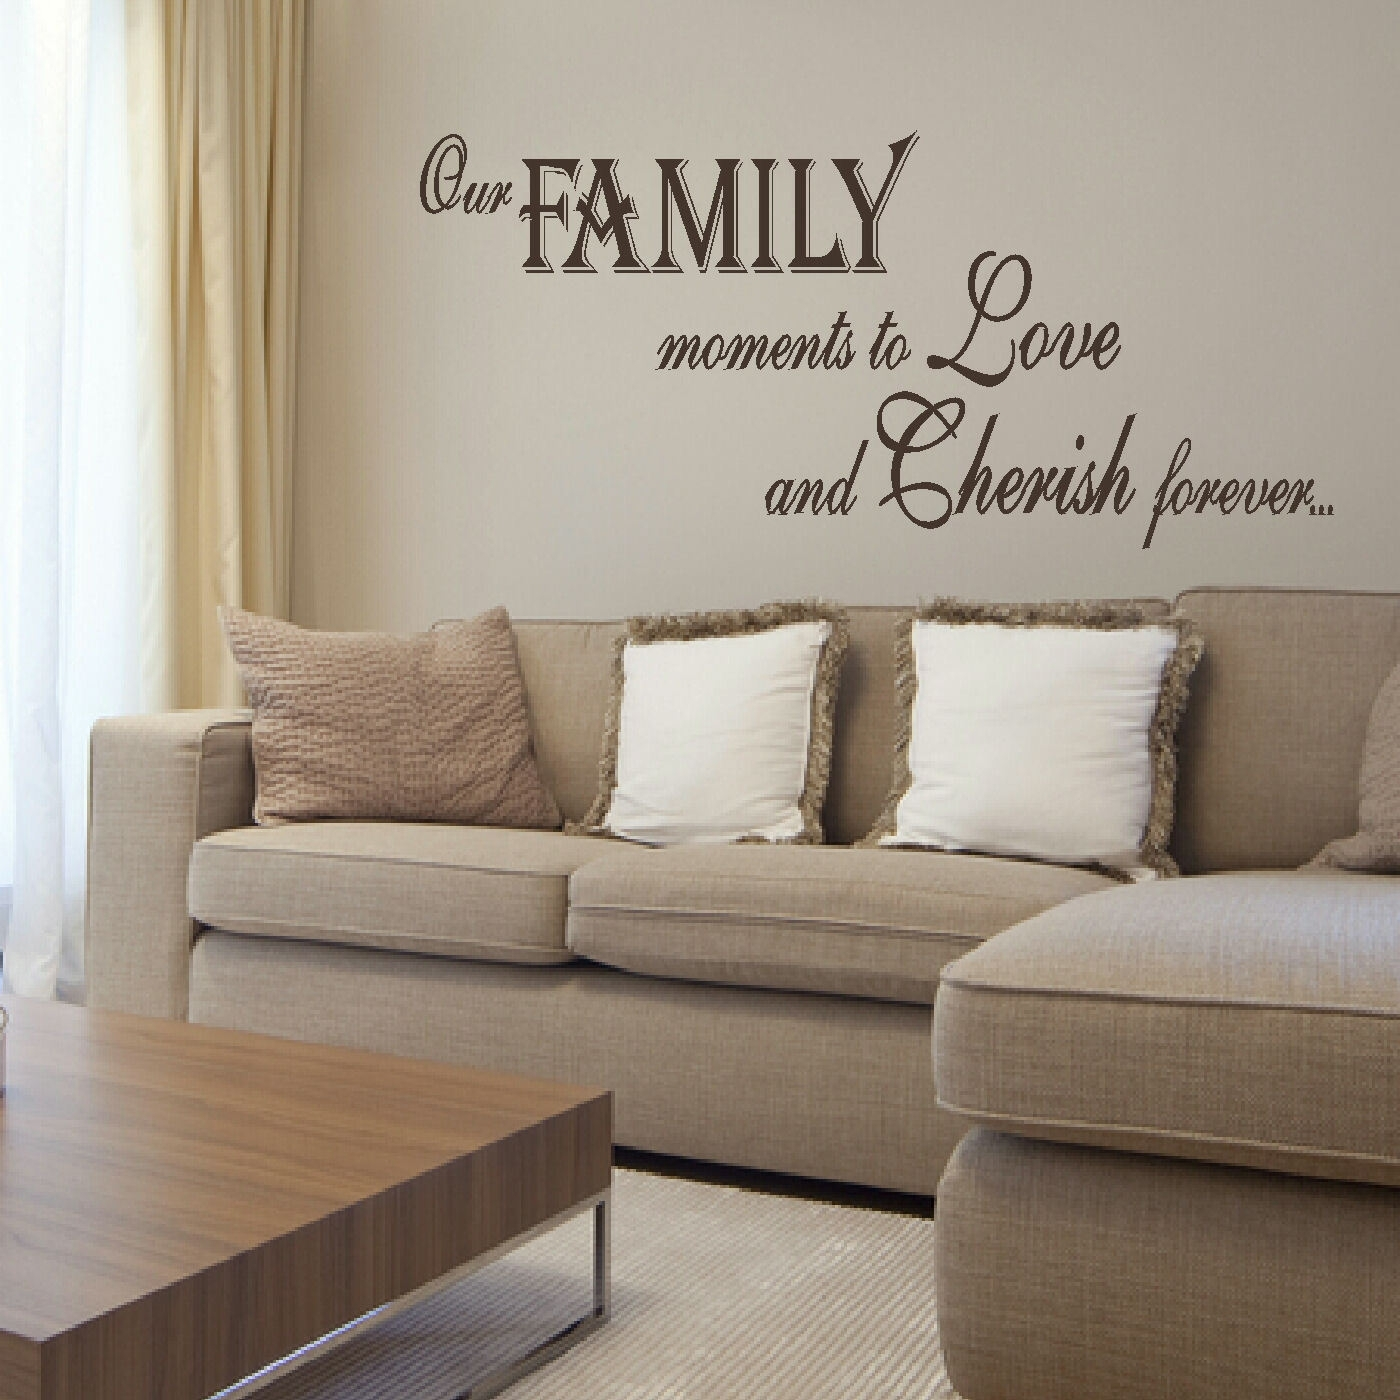 Large Bedroom Quote Family Love Giant Wall Art Sticker Transfer Throughout Most Recent Giant Wall Art (View 3 of 20)